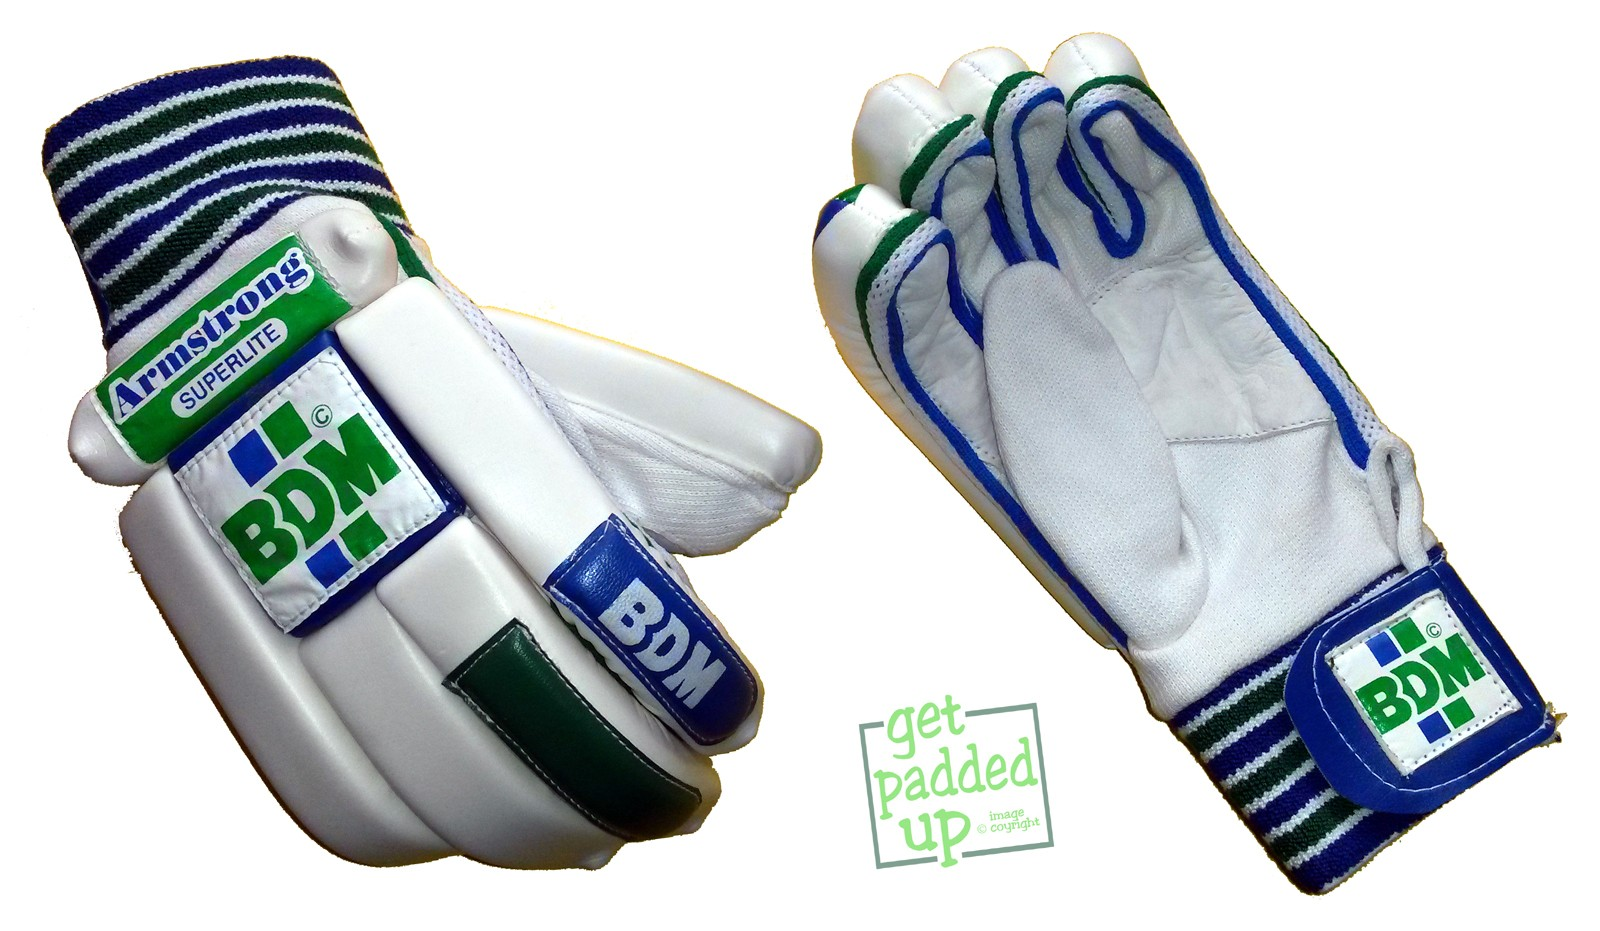 BDM Armstrong Cricket Batting Gloves